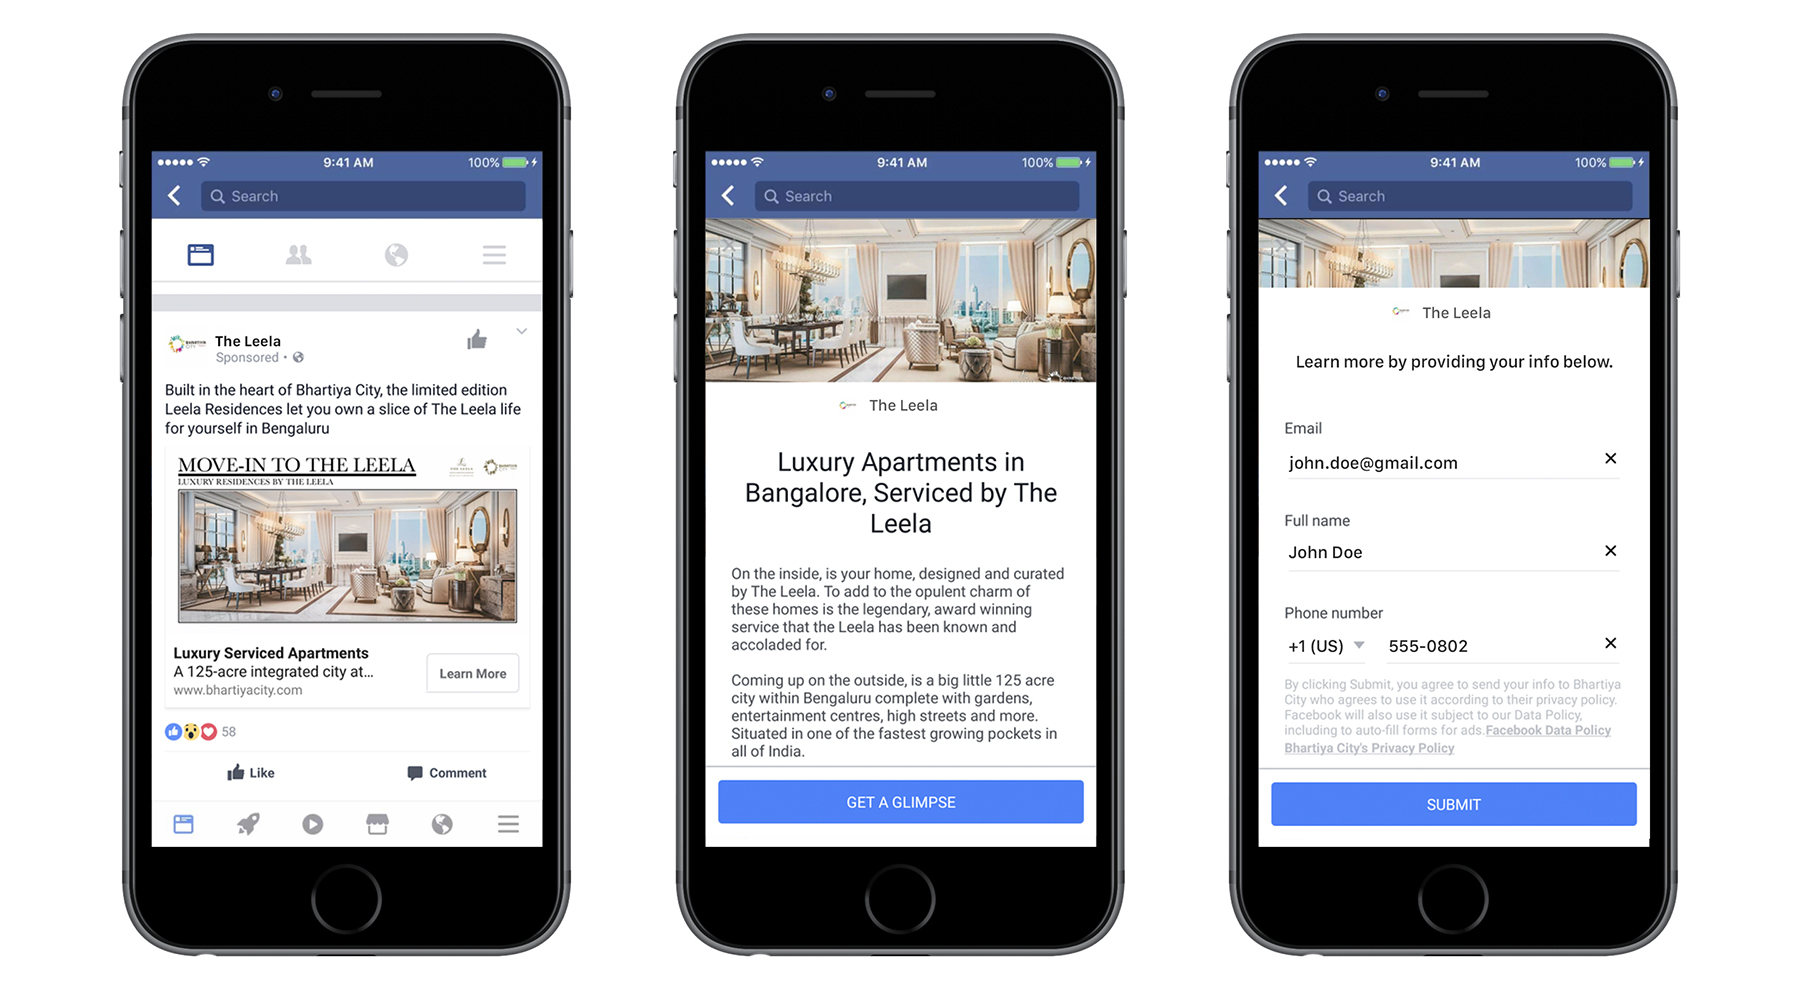 Facebook Lead Gen Ad Example | Which type of Facebook ad should you use for your business? | Macleod & Co. | Full Service Digital Marketing Agency Minneapolis